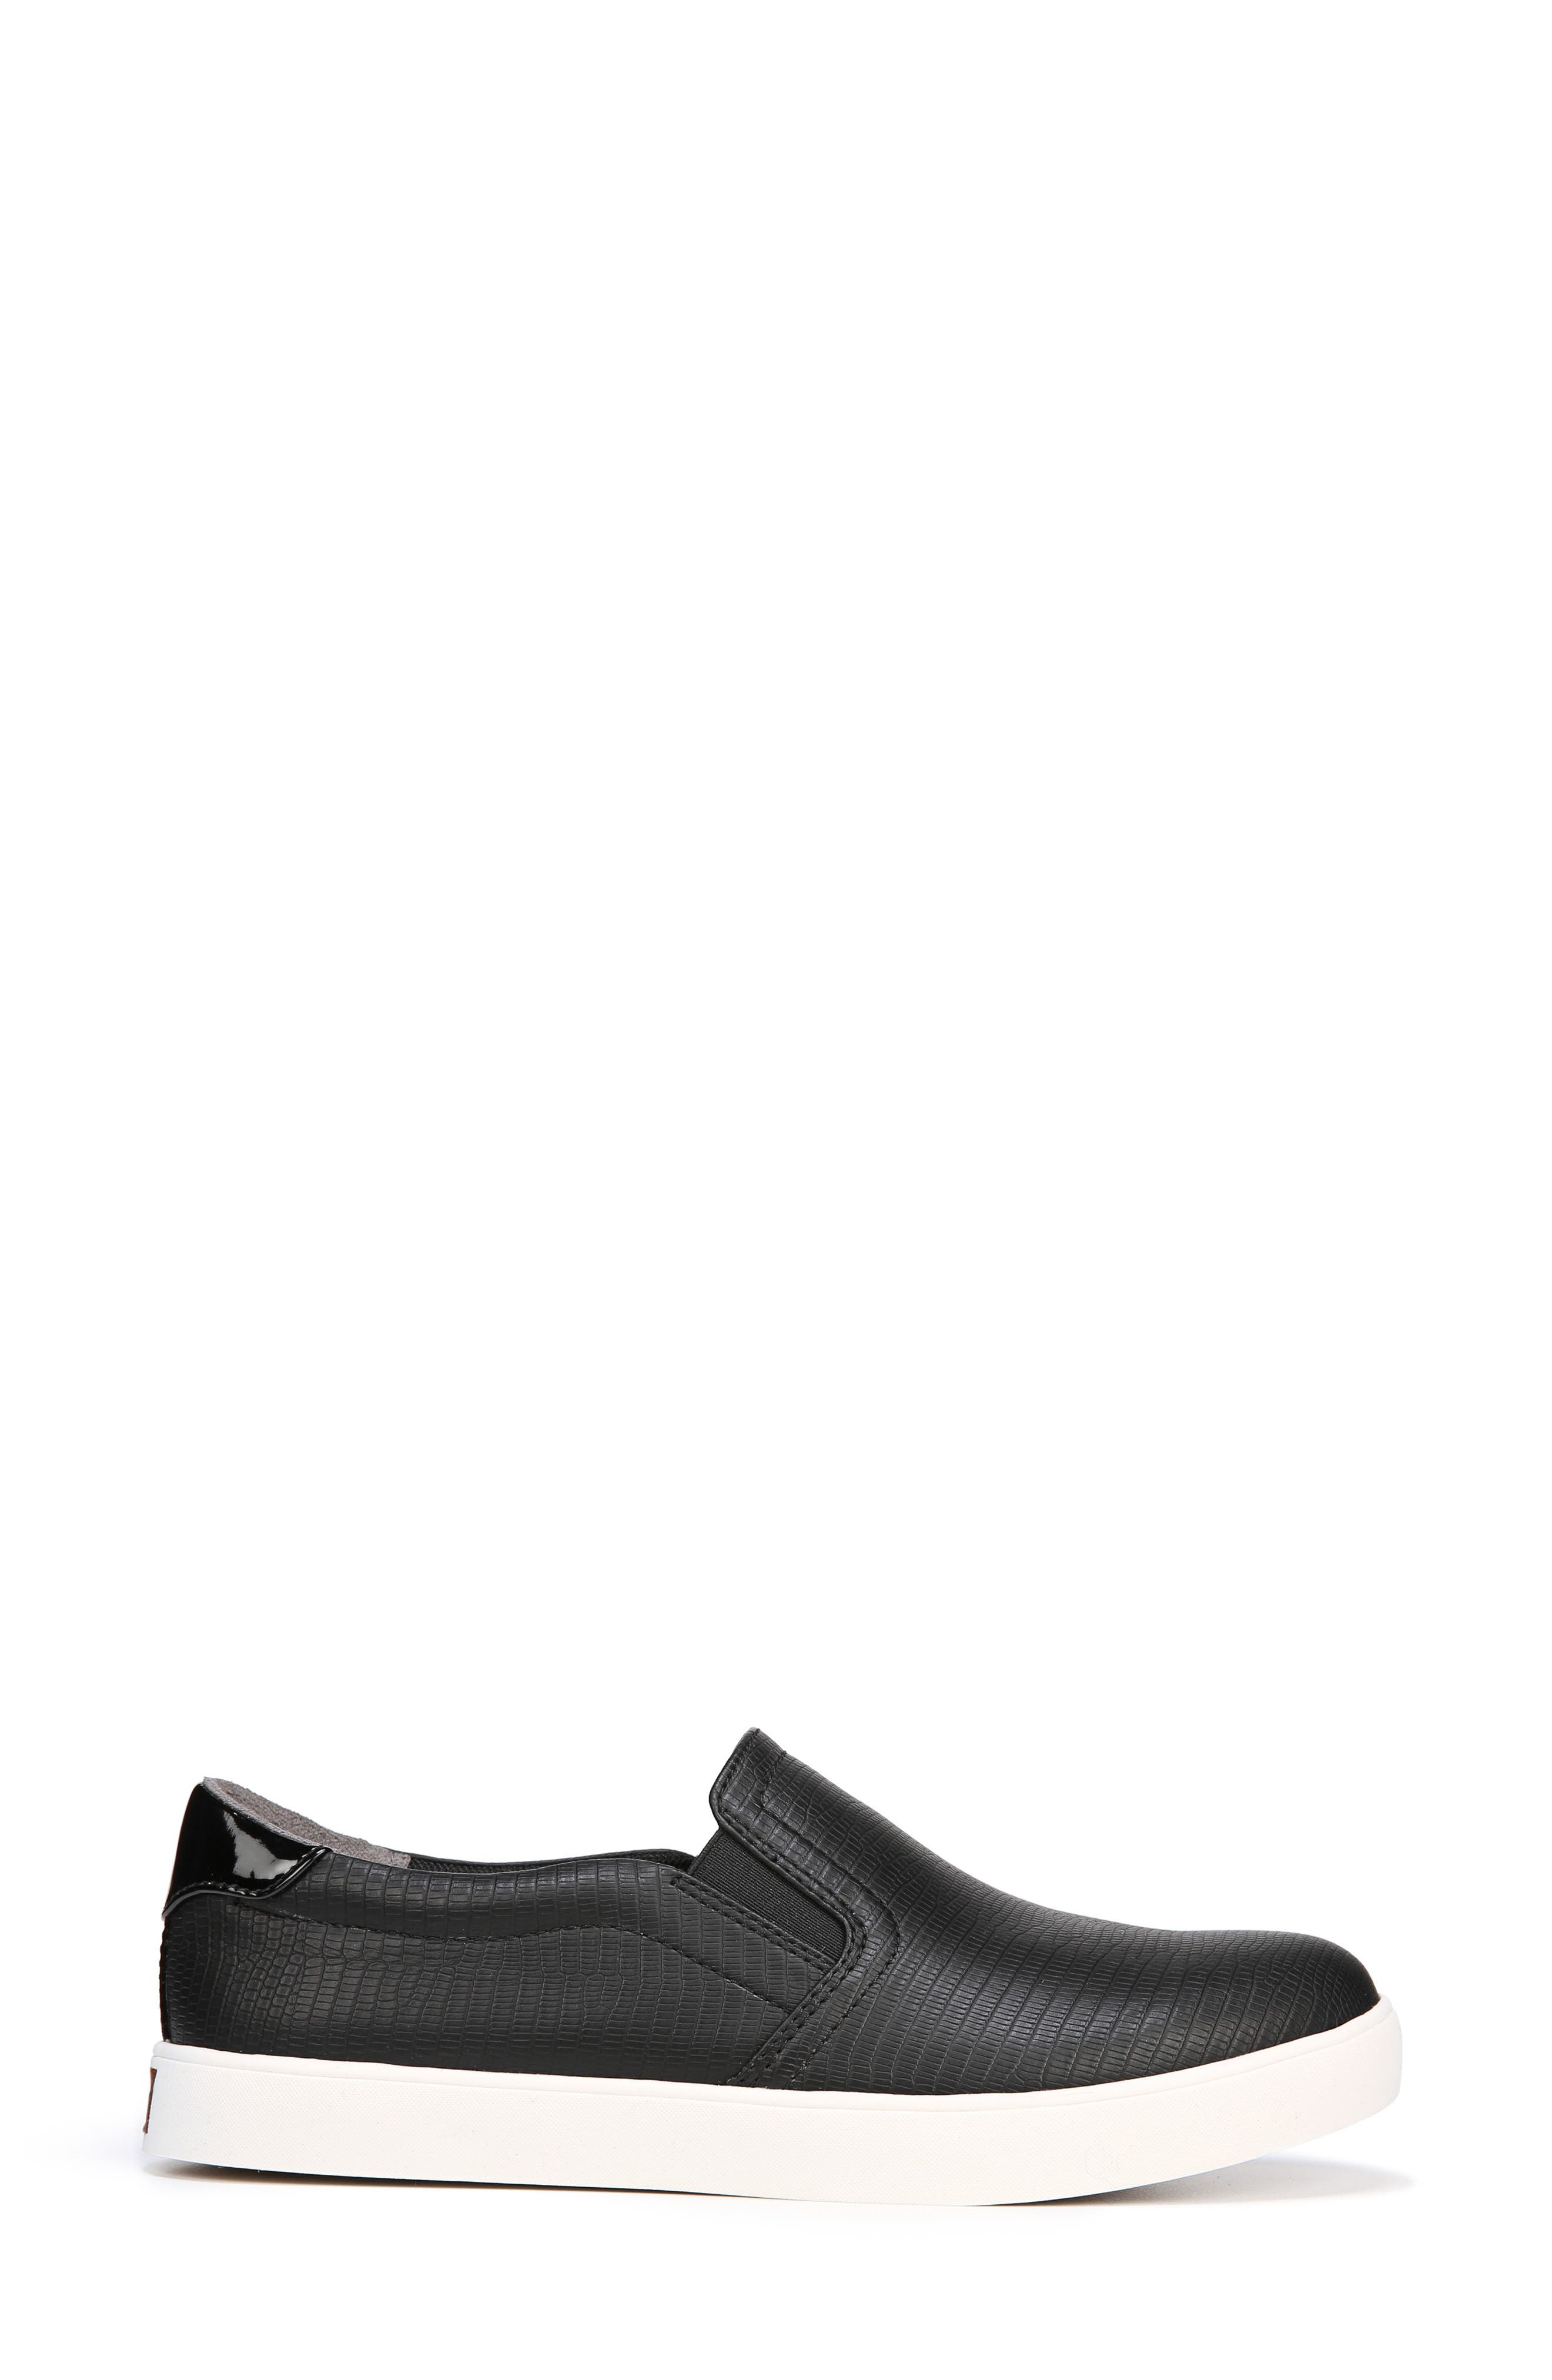 Madison Slip-On Sneaker,                             Alternate thumbnail 2, color,                             BLACK FAUX LEATHER